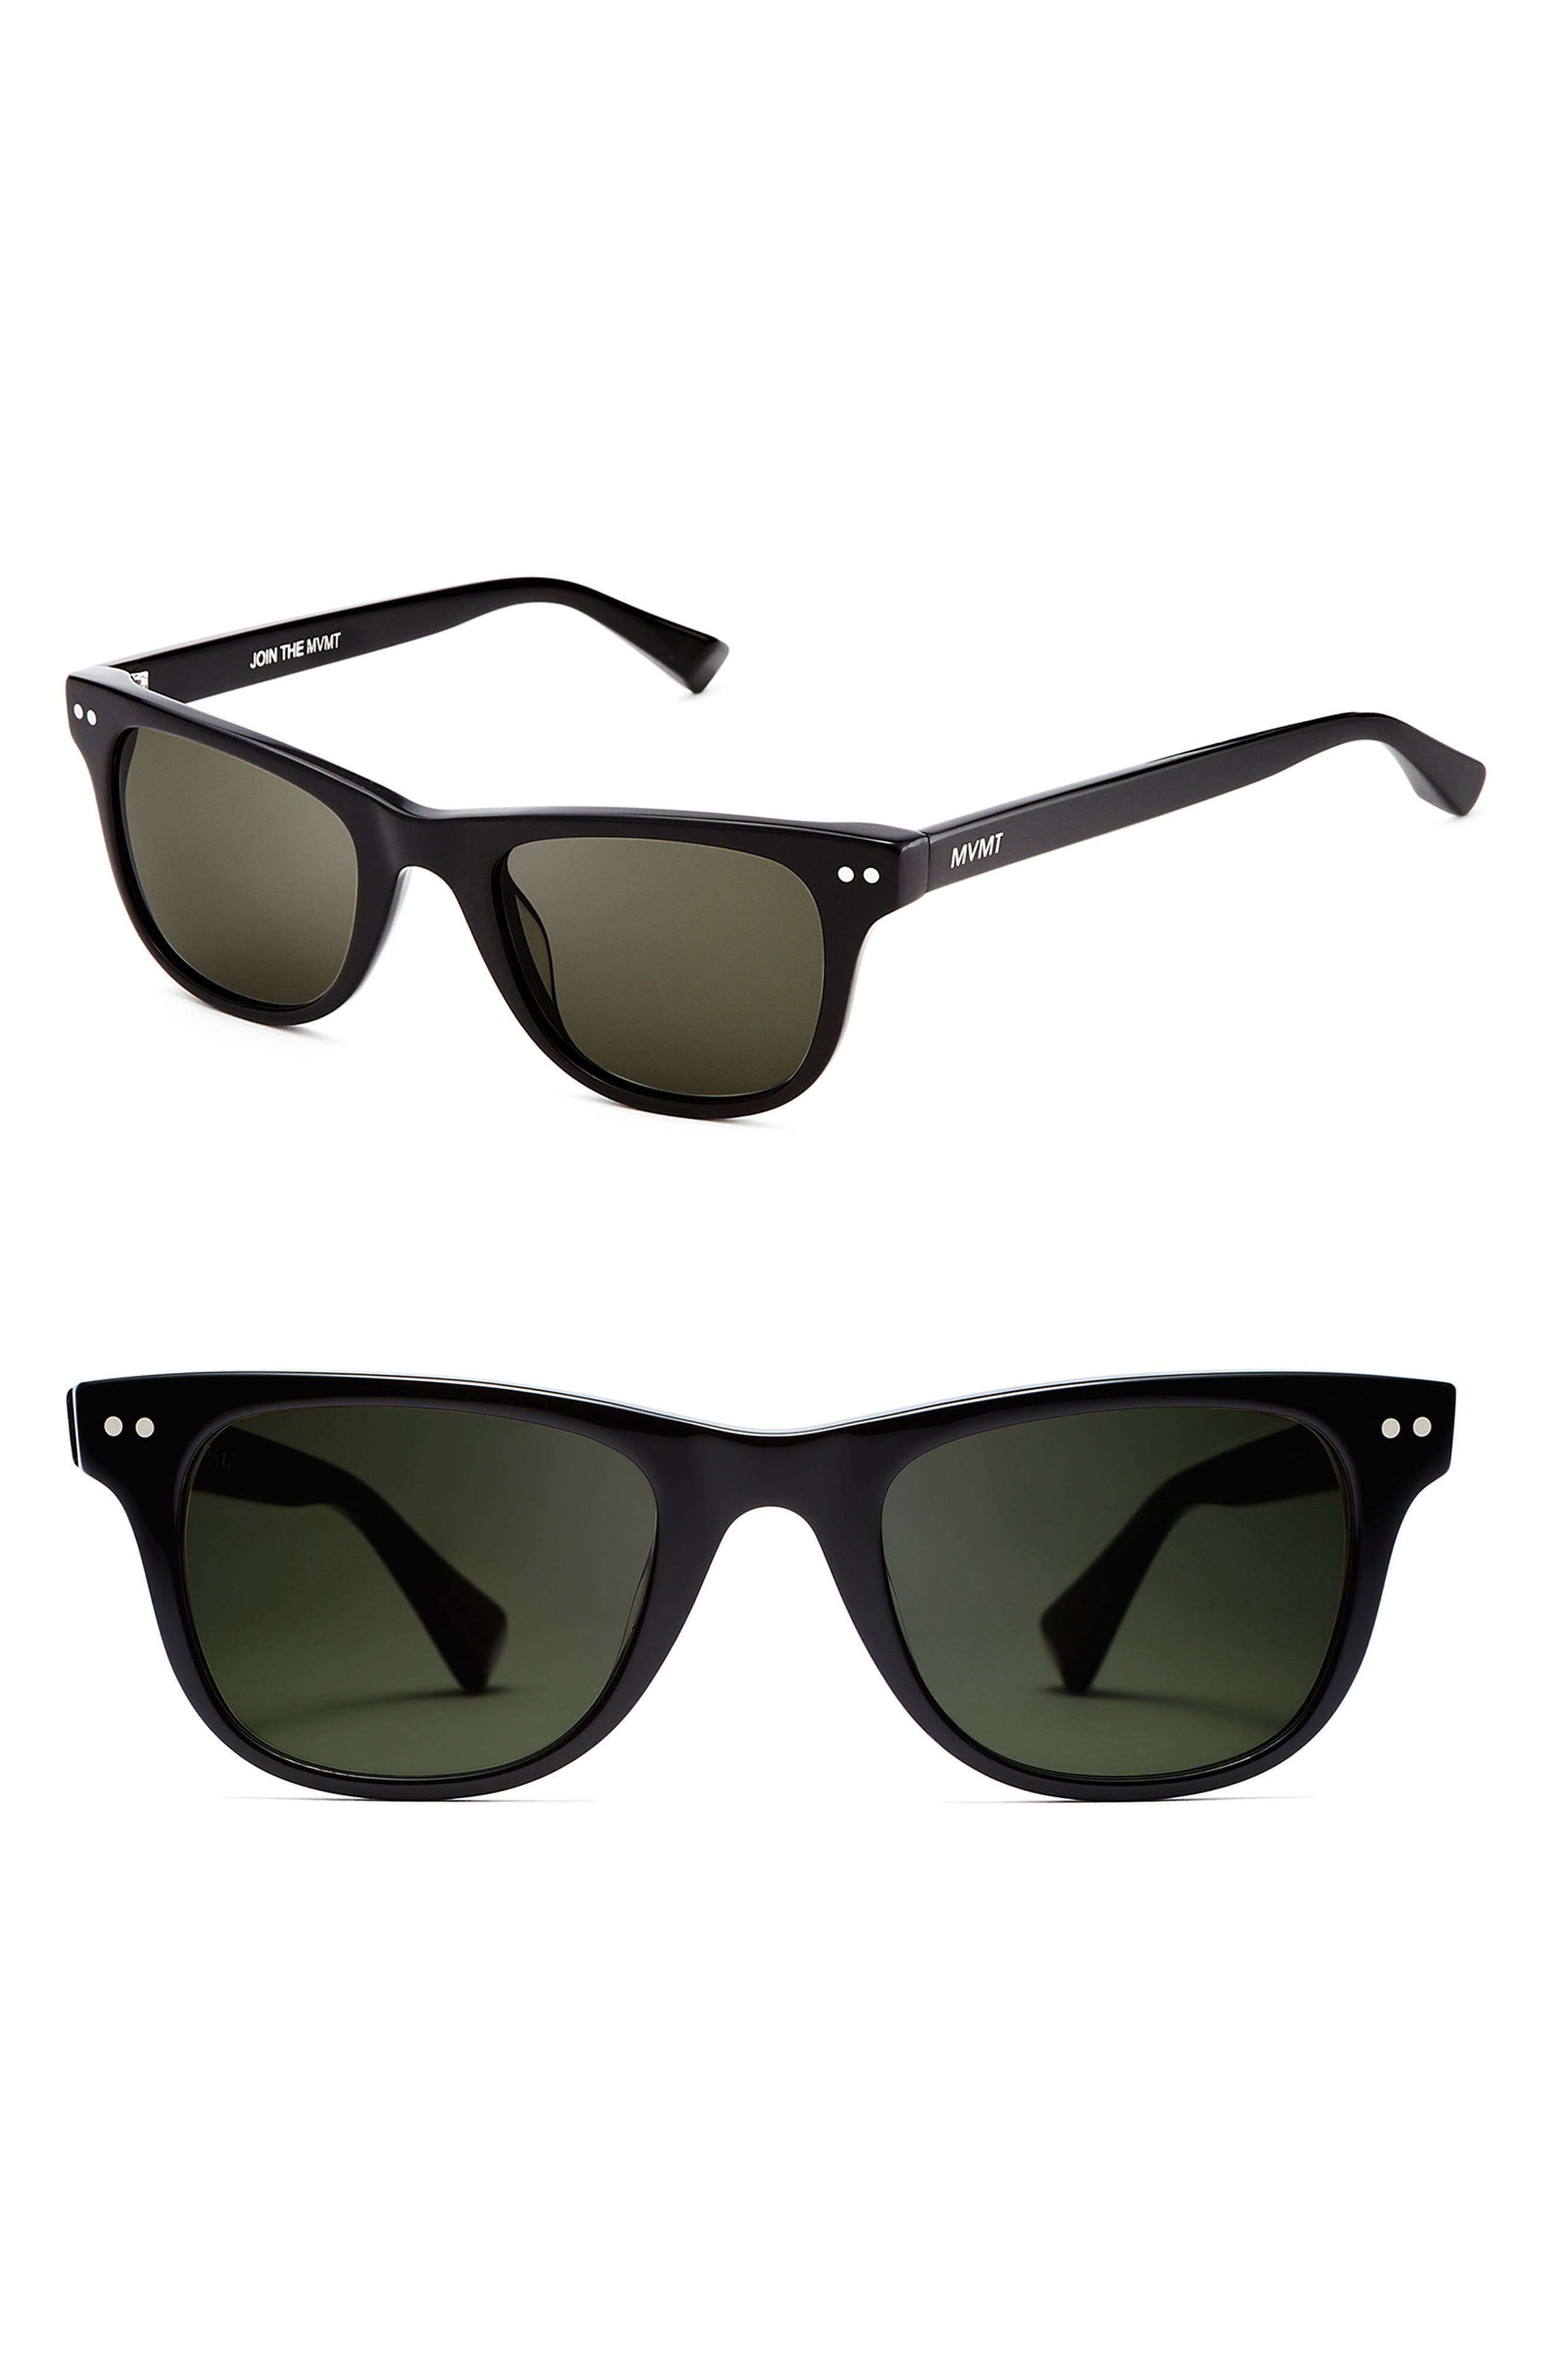 Outsider 51mm Polarized Sunglasses,                             Main thumbnail 1, color,                             PURE BLACK